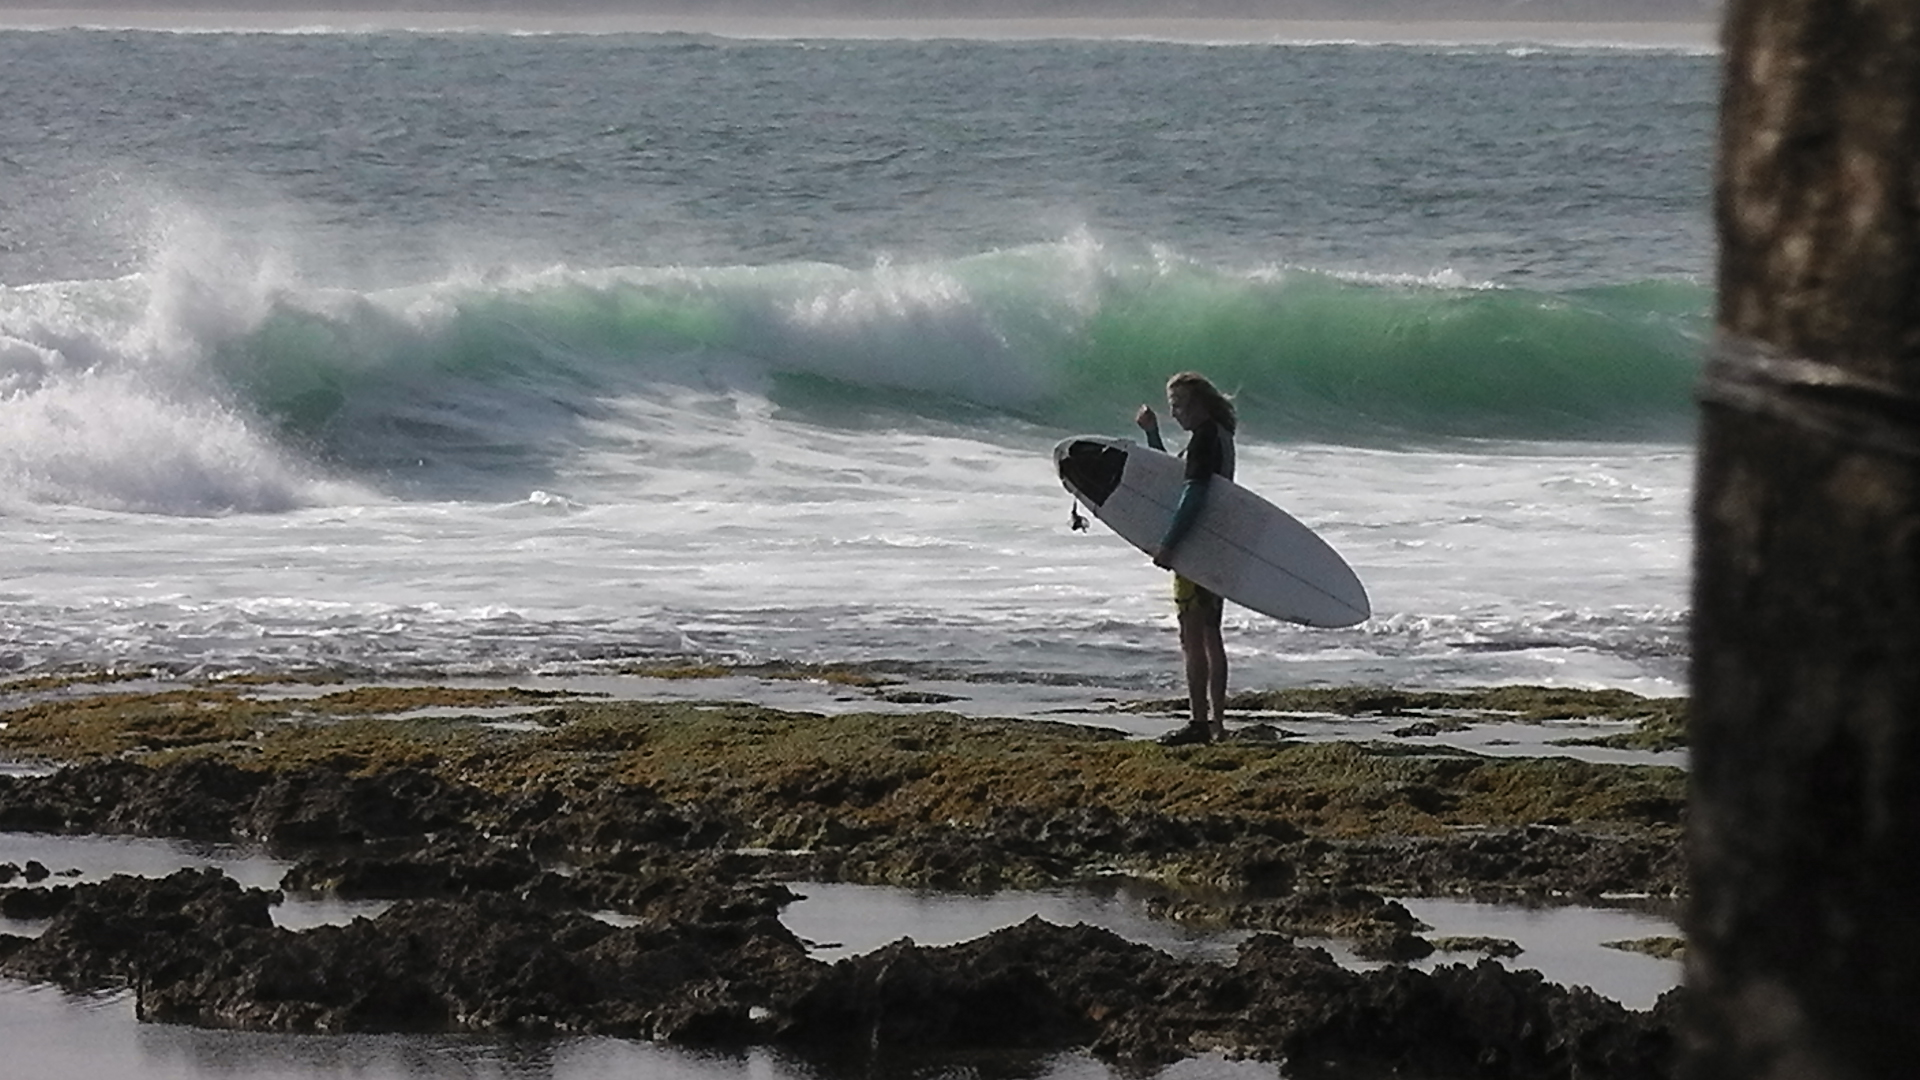 Surfer waiting on a reef